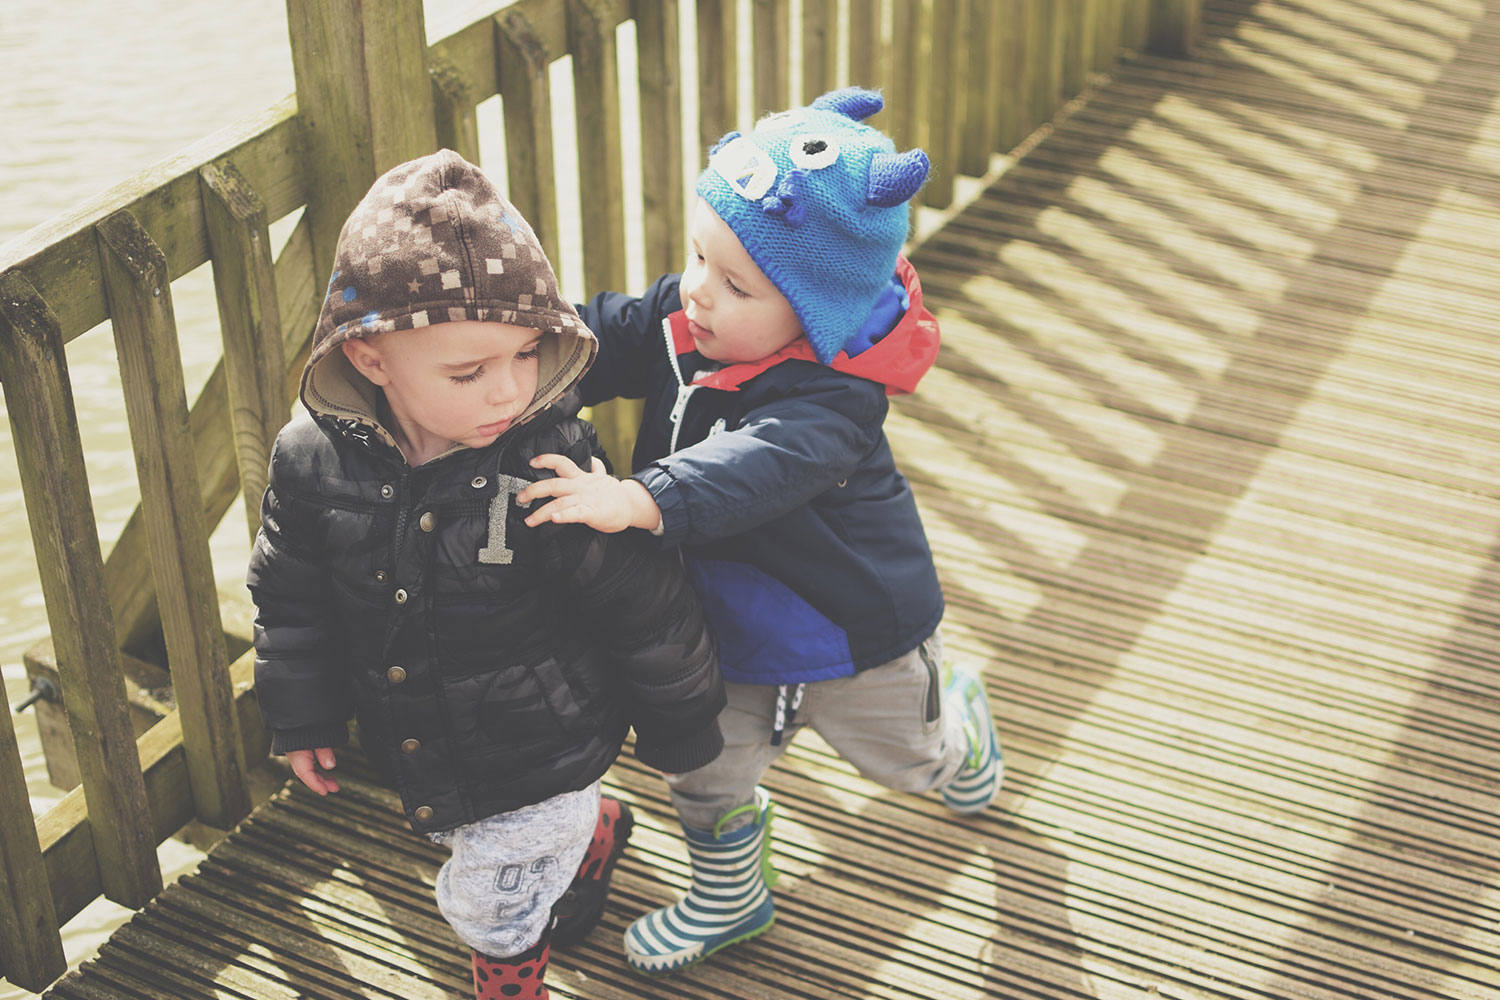 Our Day Out at the Slimbridge Wetland Centre, Gloucestershire - Toddler cousins playing together